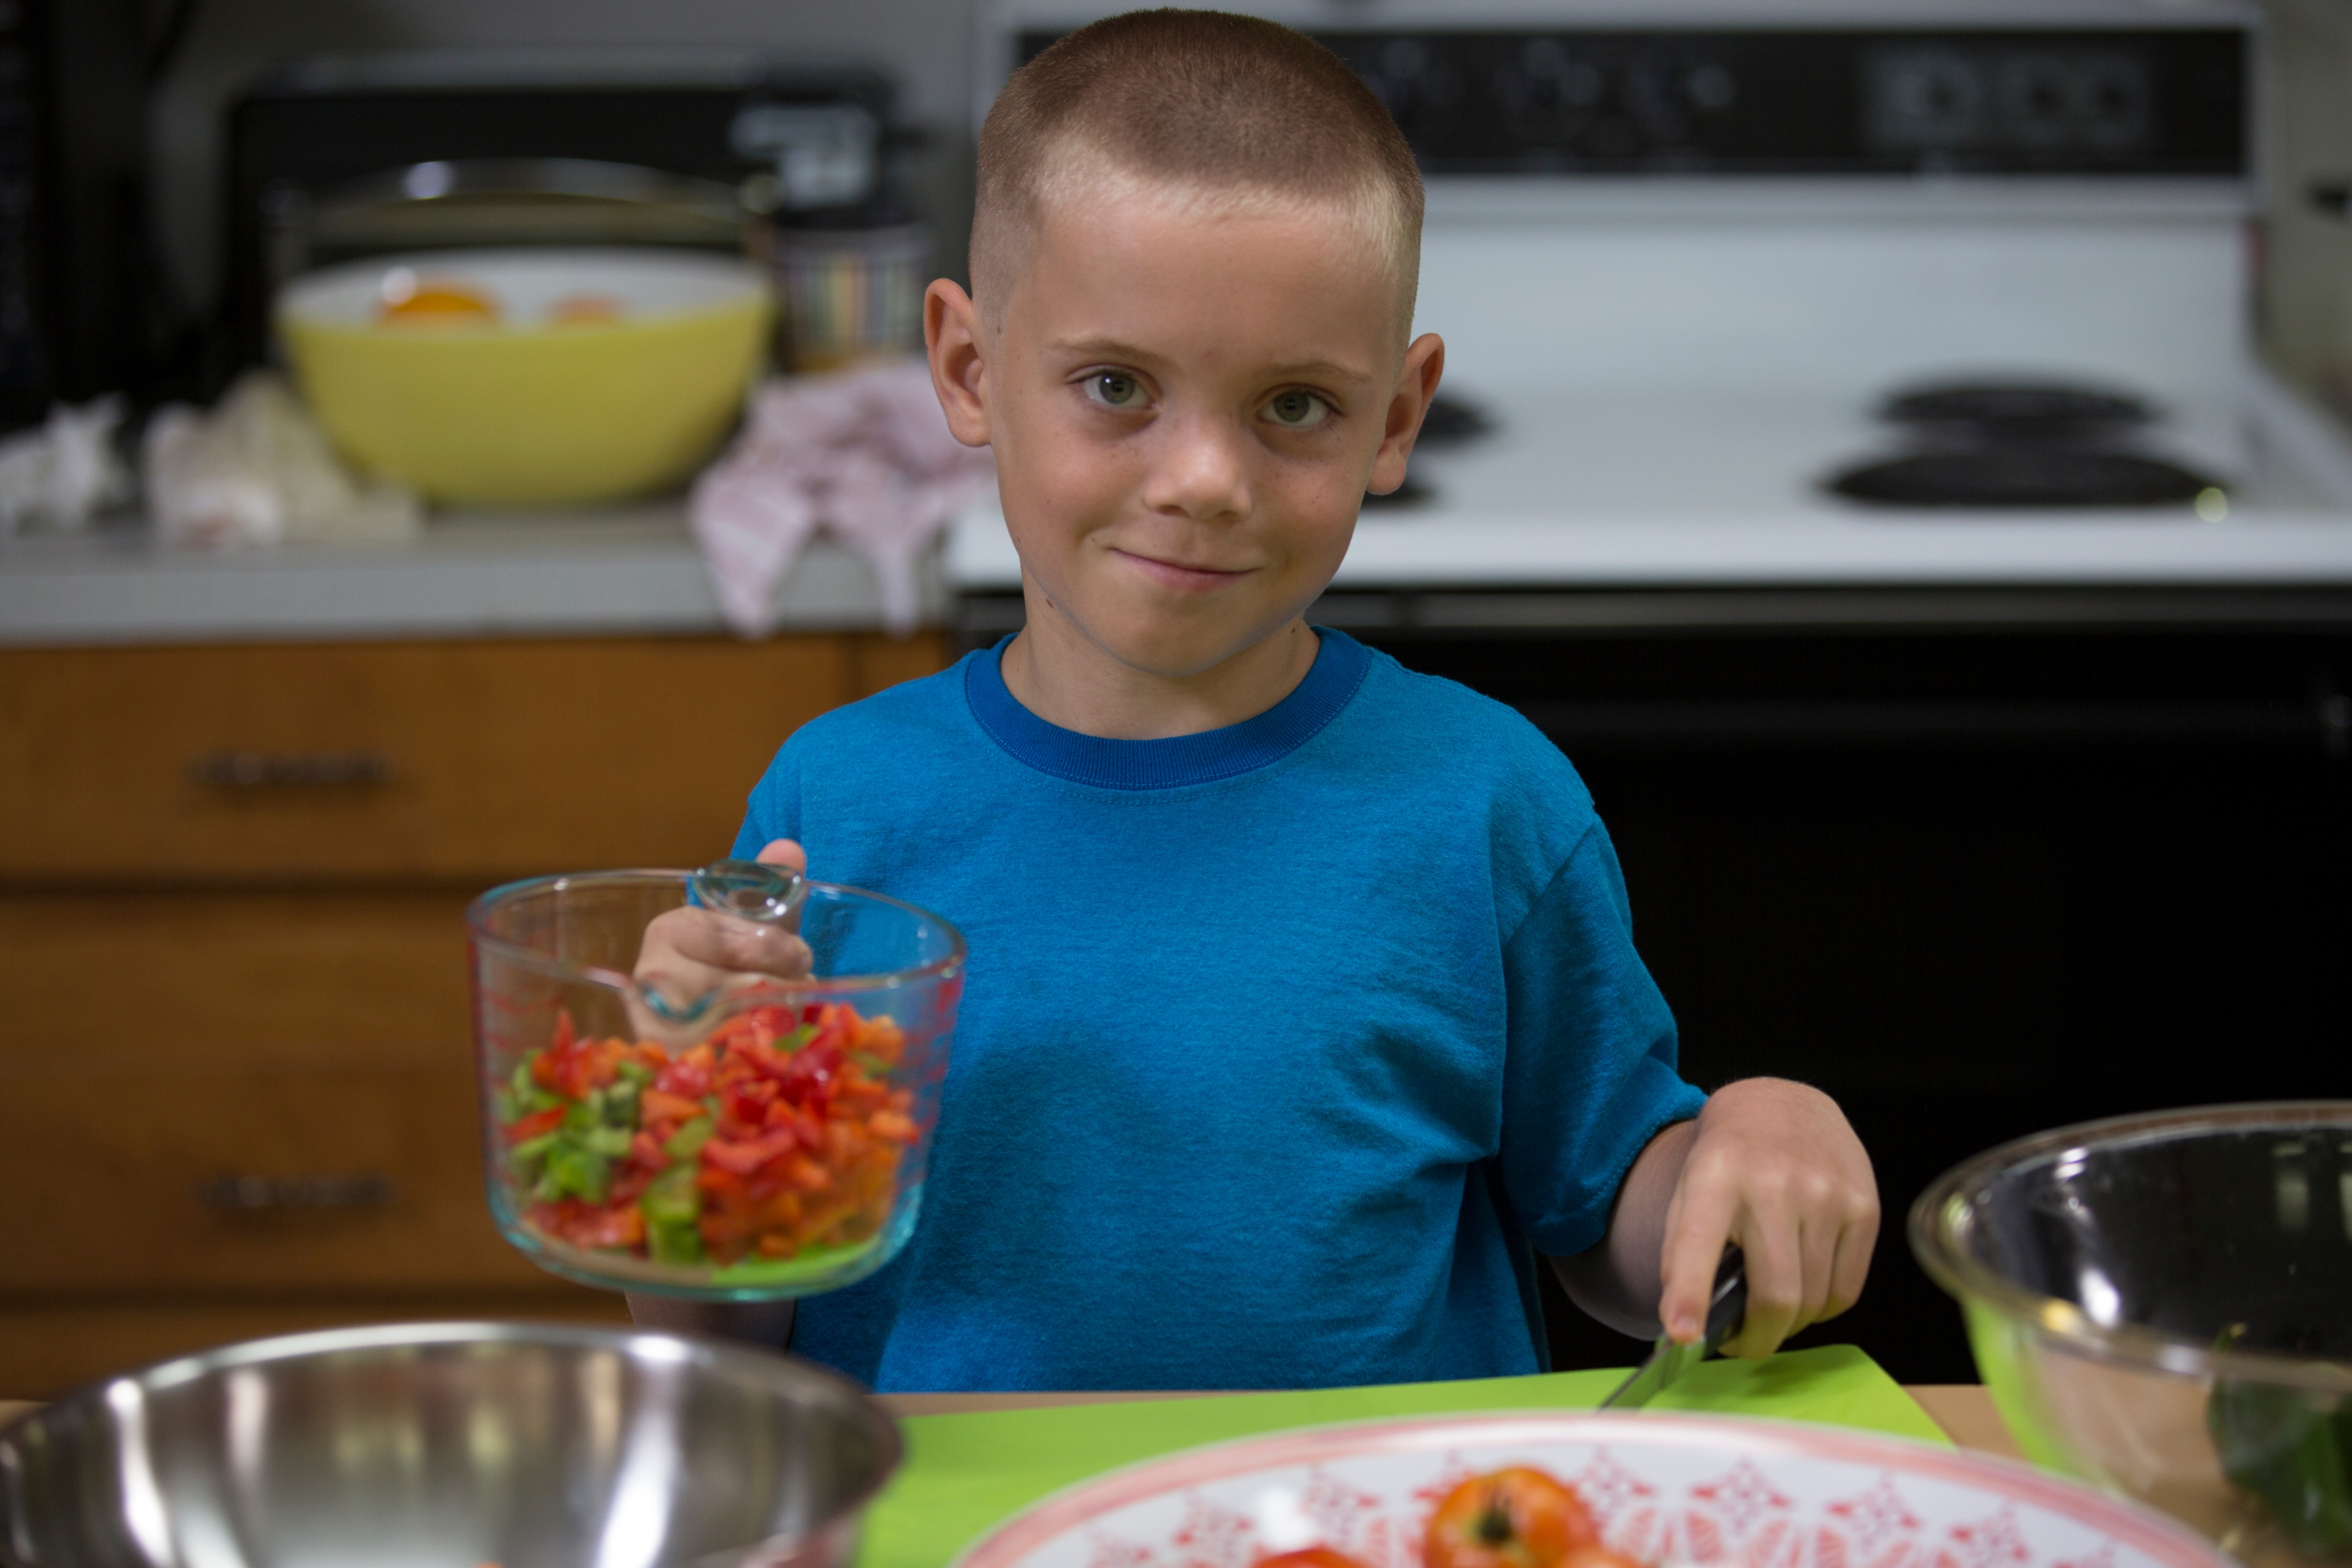 A boy prepares fruits and vegetables in the kitchen. A mystery fruit and veggie taste test is one activity families can try this summer as a way to spend quality time together.